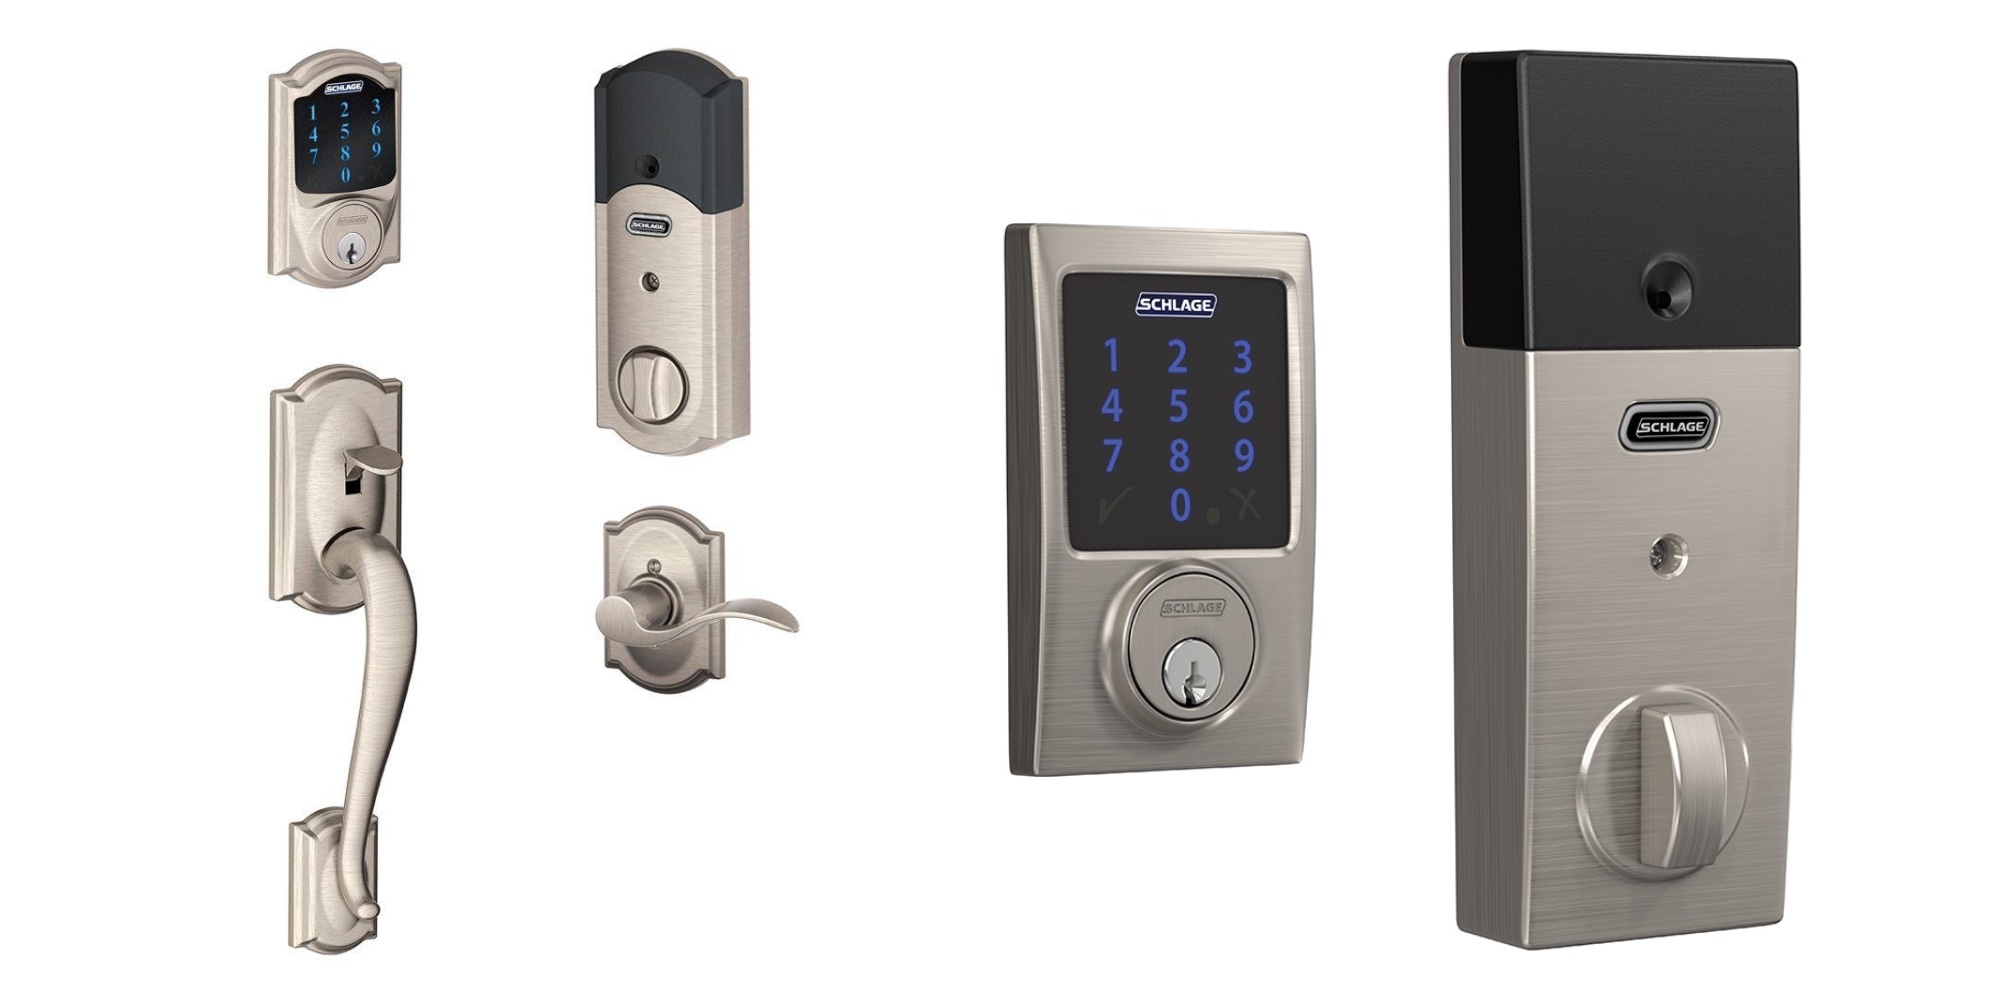 Schlage's Connect Z-Wave Smart Lock is down to $179 (Reg. $270) + up to 40% off more from $54